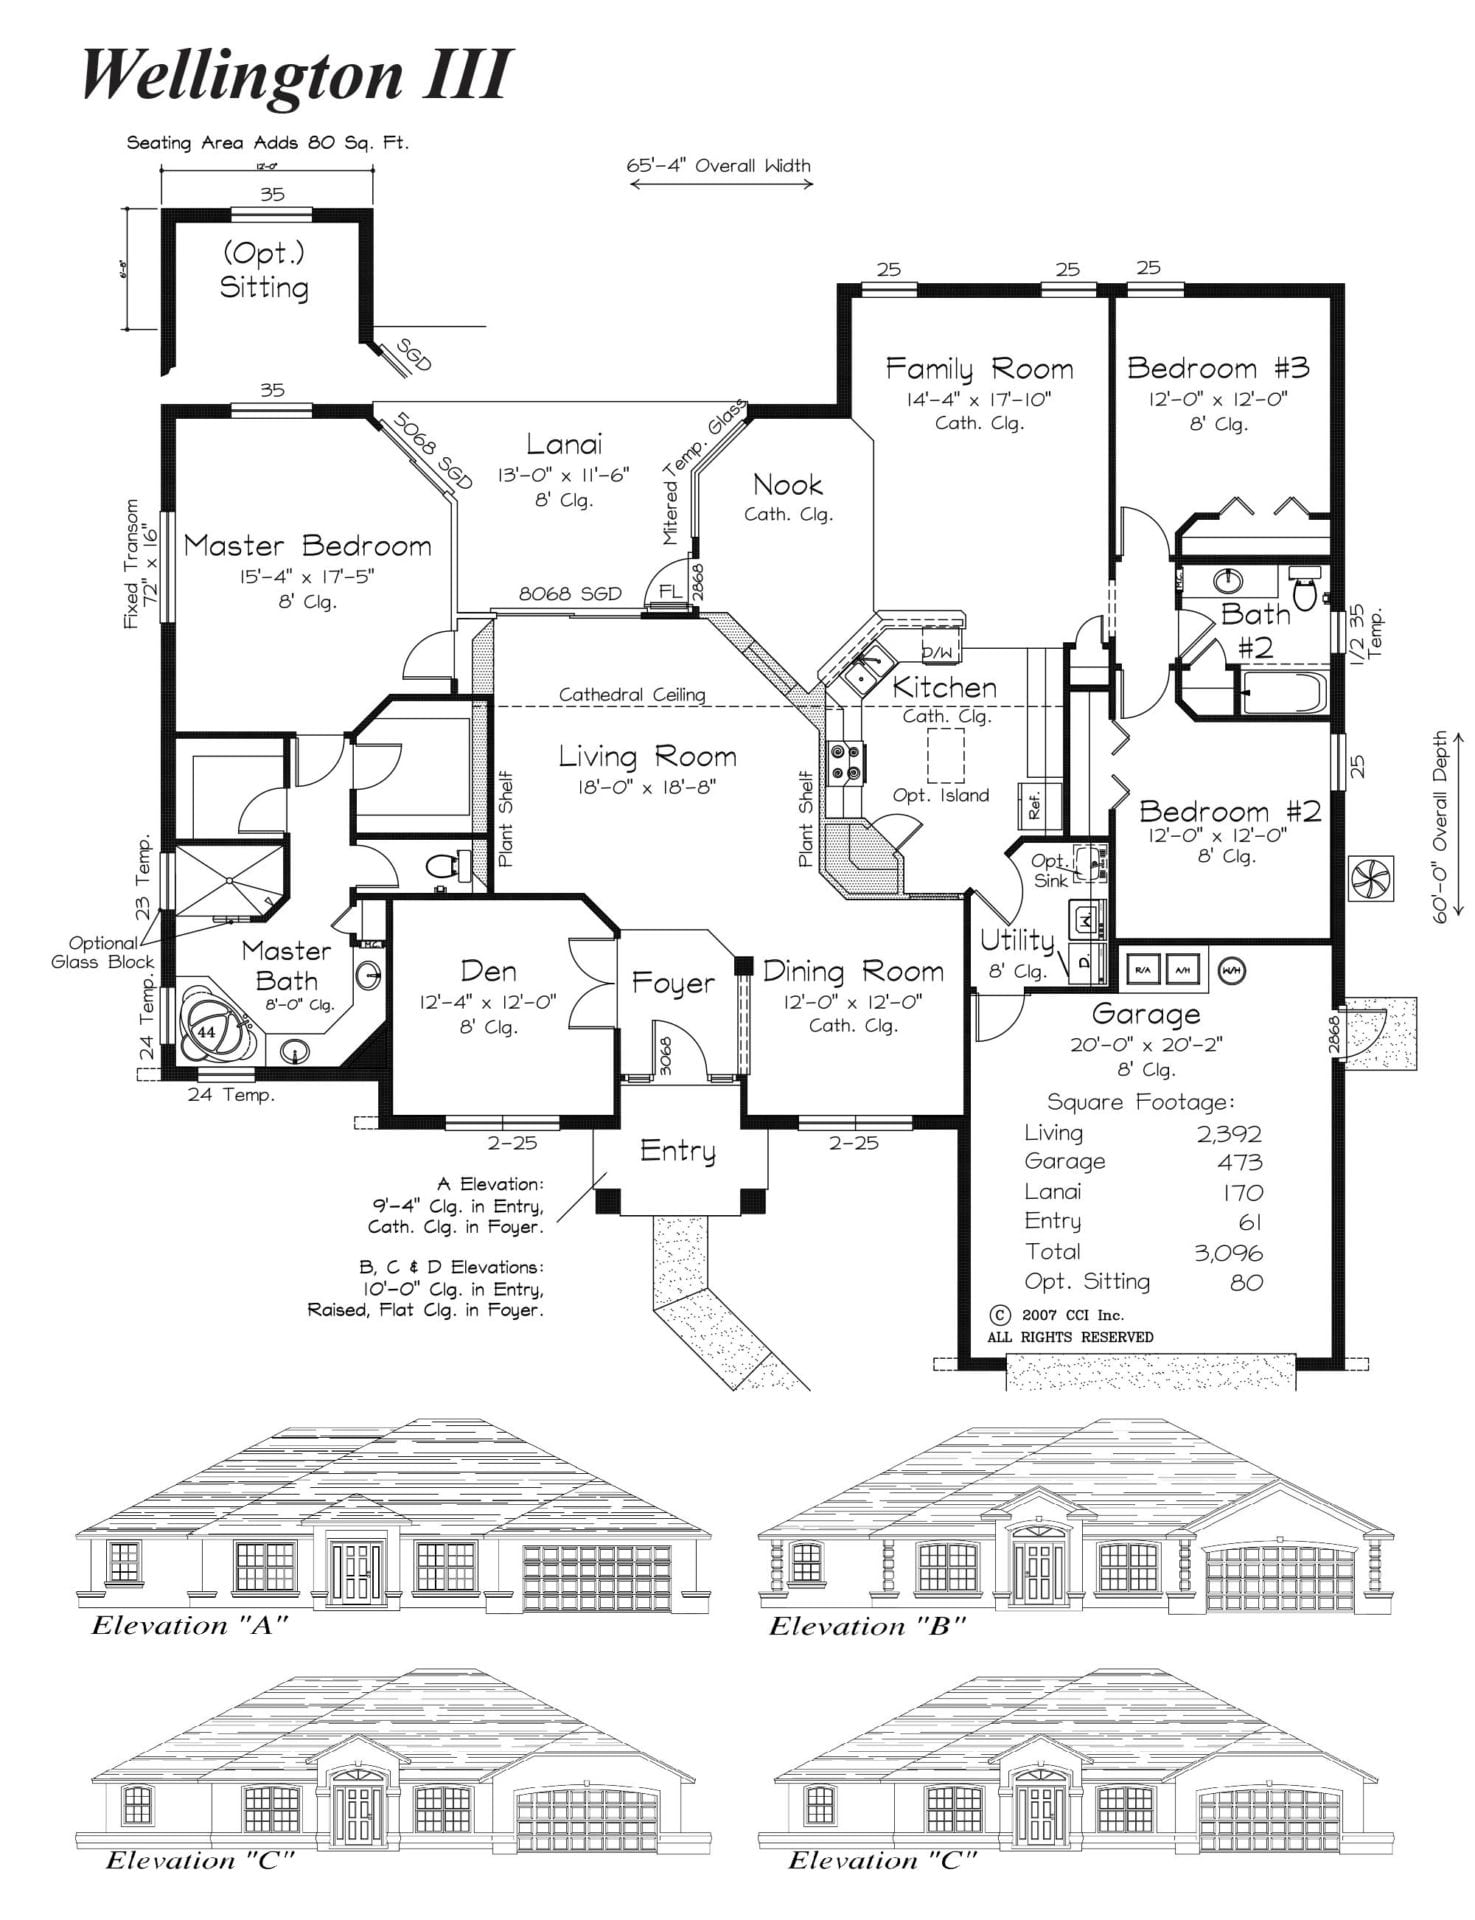 Wellington III Floor Plan - Curington Homes - Ocala Florida Contractor